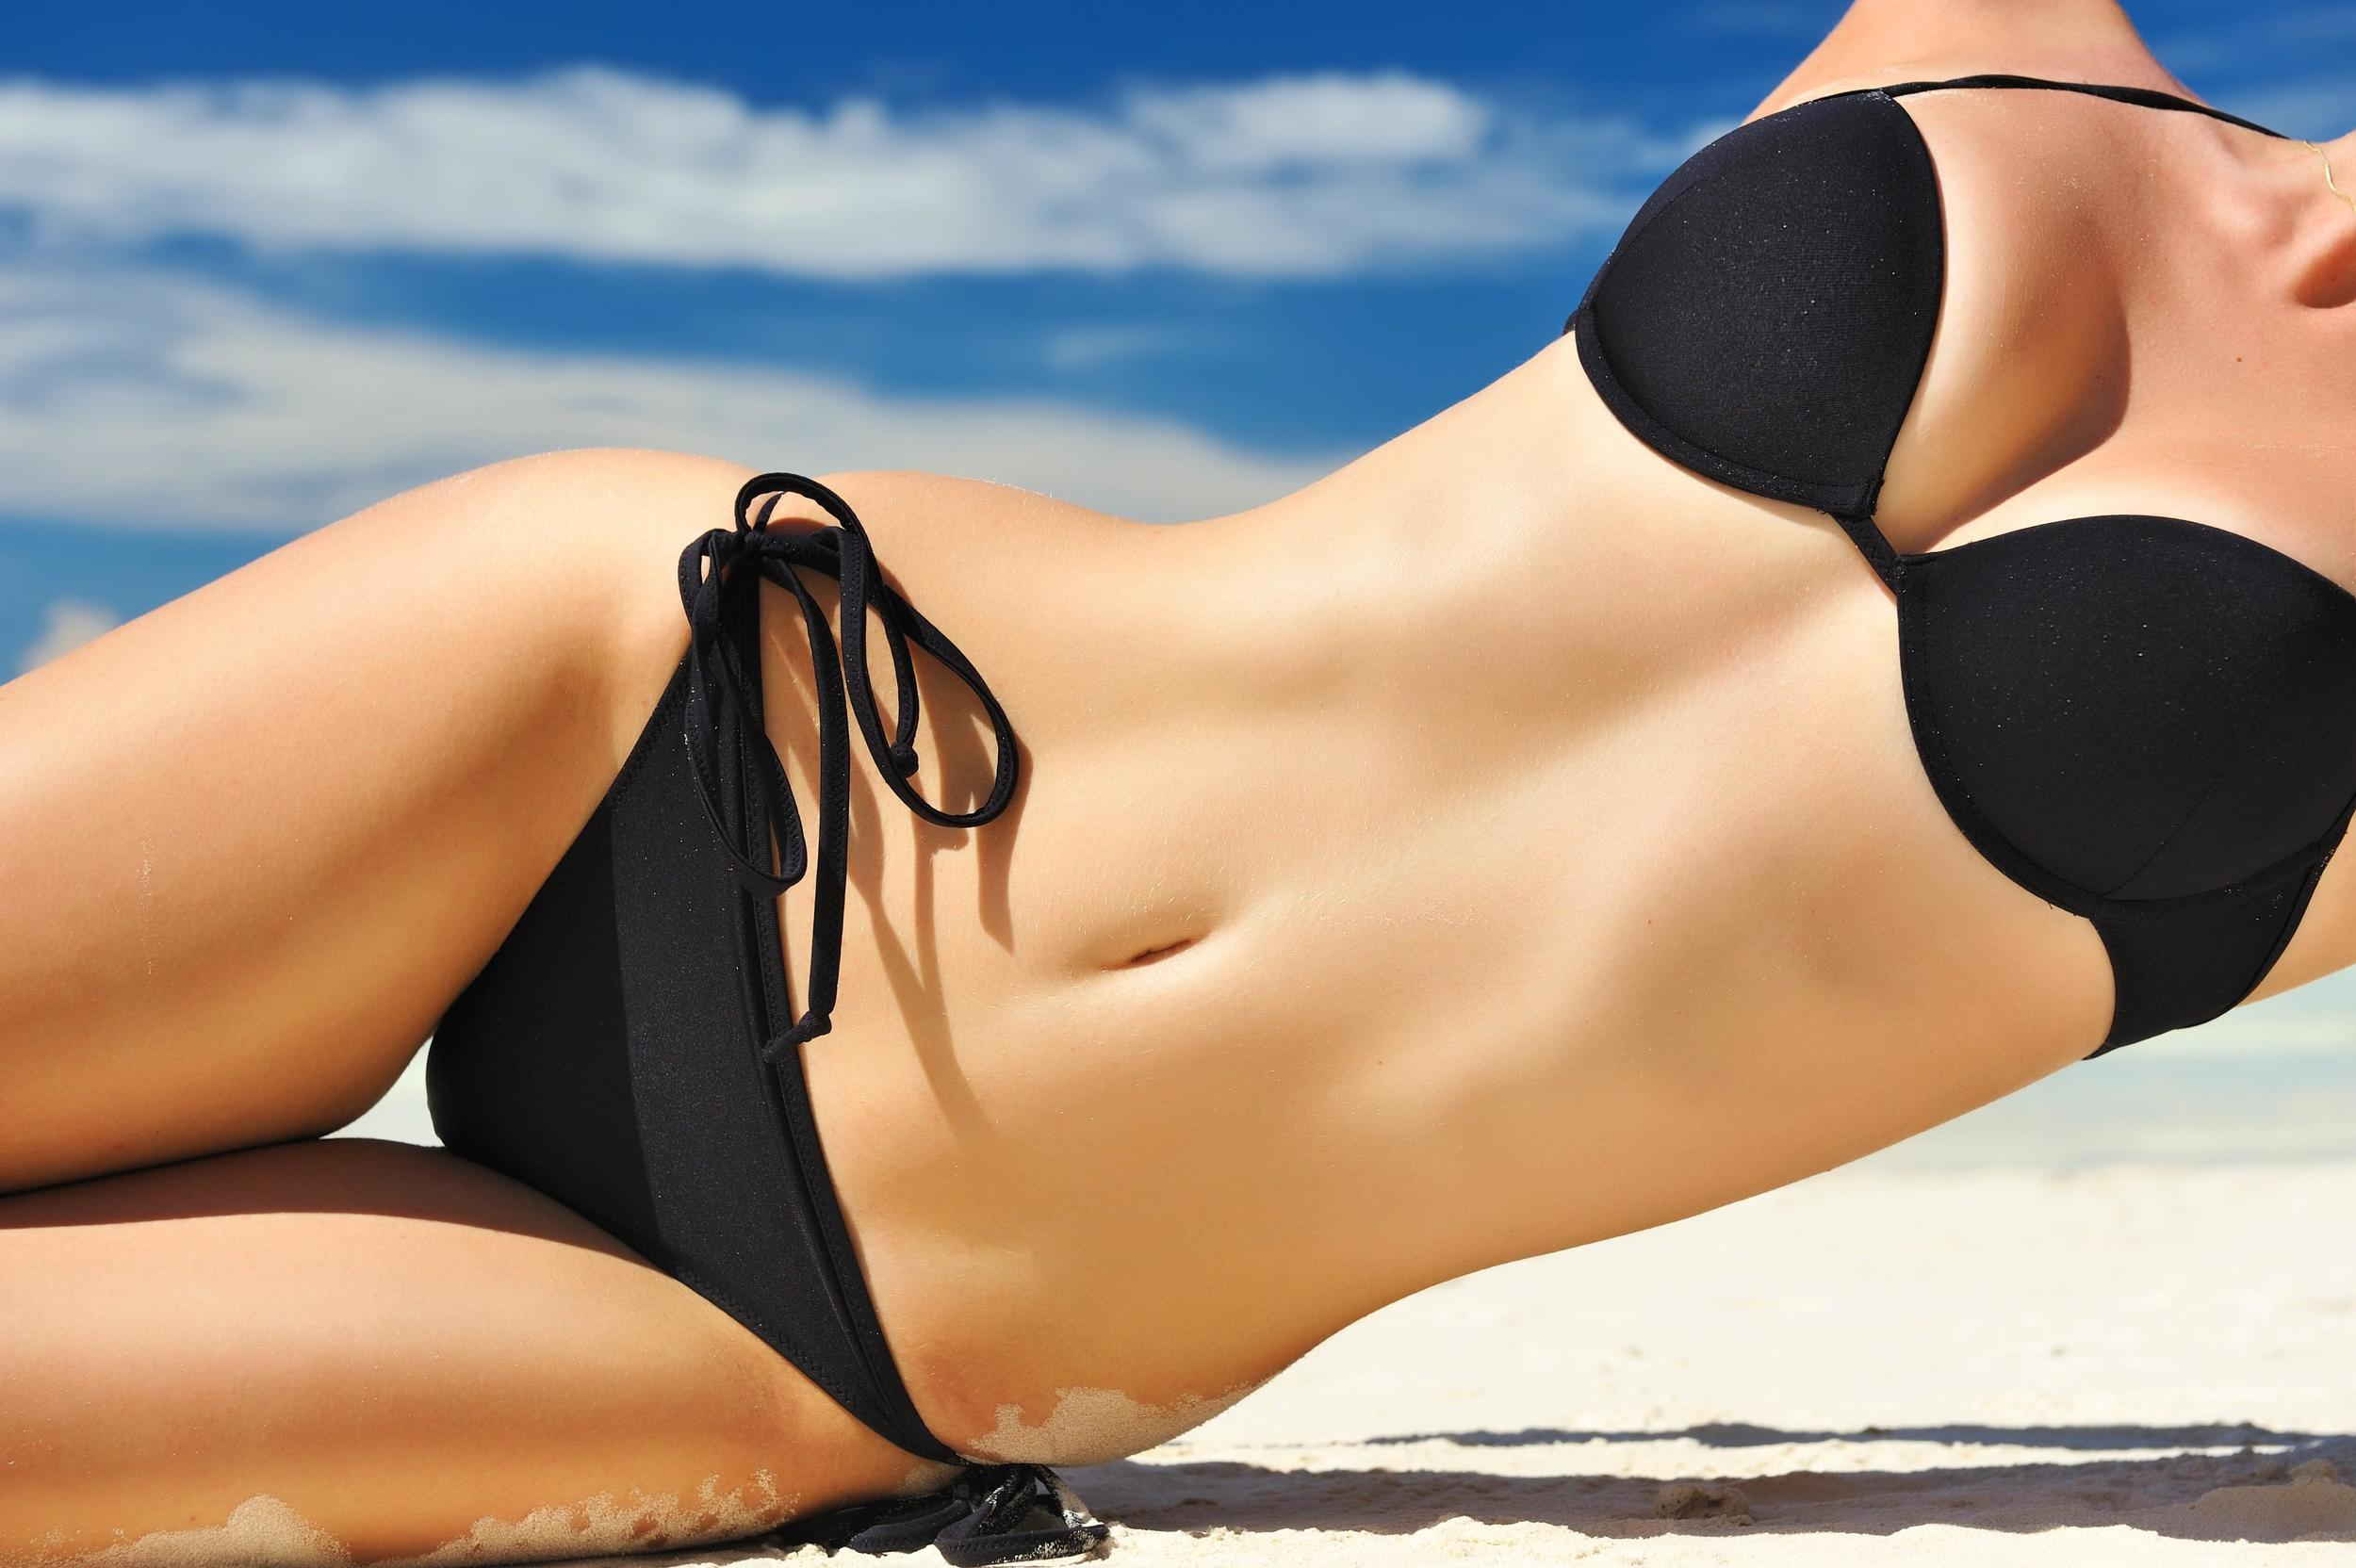 $279-for-1-Year-of-Unlimited-Laser-Hair-Removal-on-3-Body-Parts-at-Kaya-Kama-Day-Spa-$5000-value.jpg